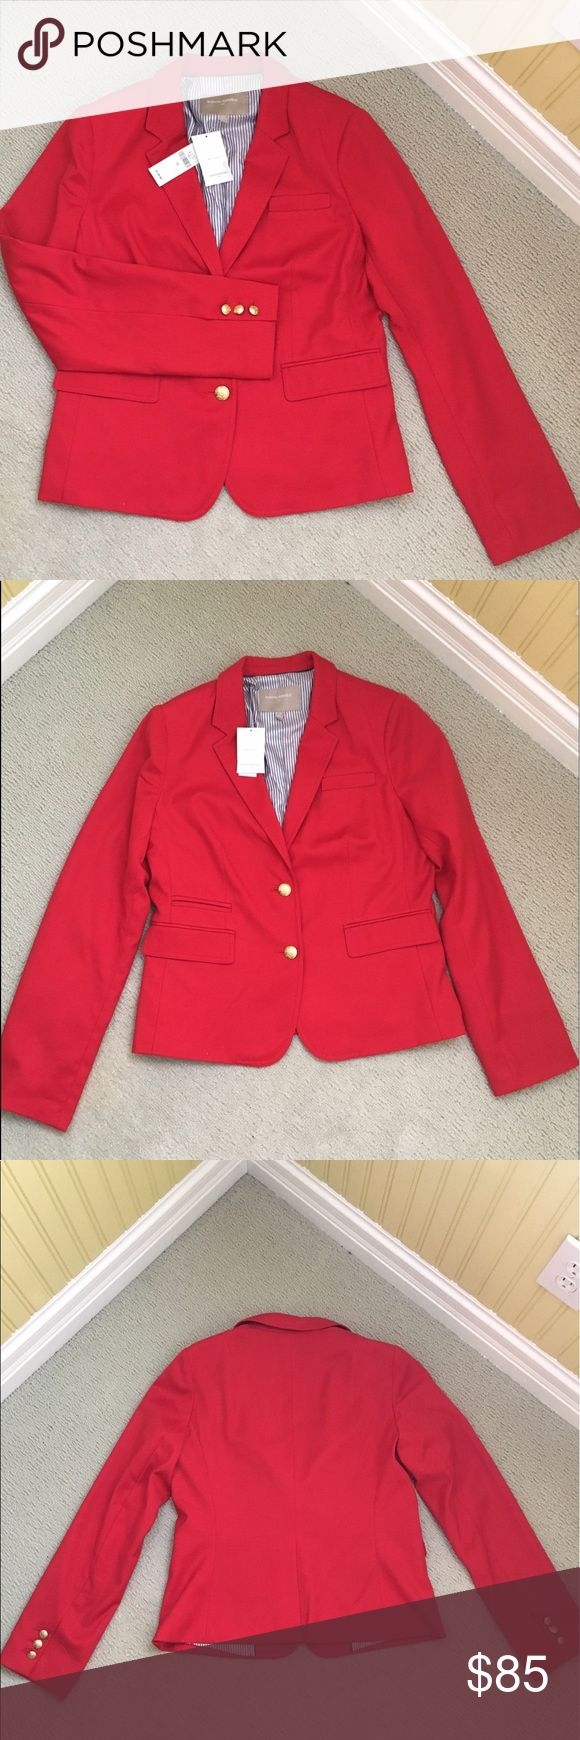 🆕Banana Republic Red Blazer Banana Republic Red Blazer, NEW with tags, NEVER worn! Perfect condition, comfortable, soft yet structured. Lining on inside is blue and white stripe. A Classic price for your wardrobe, this blazer can be worn professionally over a skirt or pantsuit, or make it casual with a solid Tshirt and jeans. Banana Republic Jackets & Coats Blazers